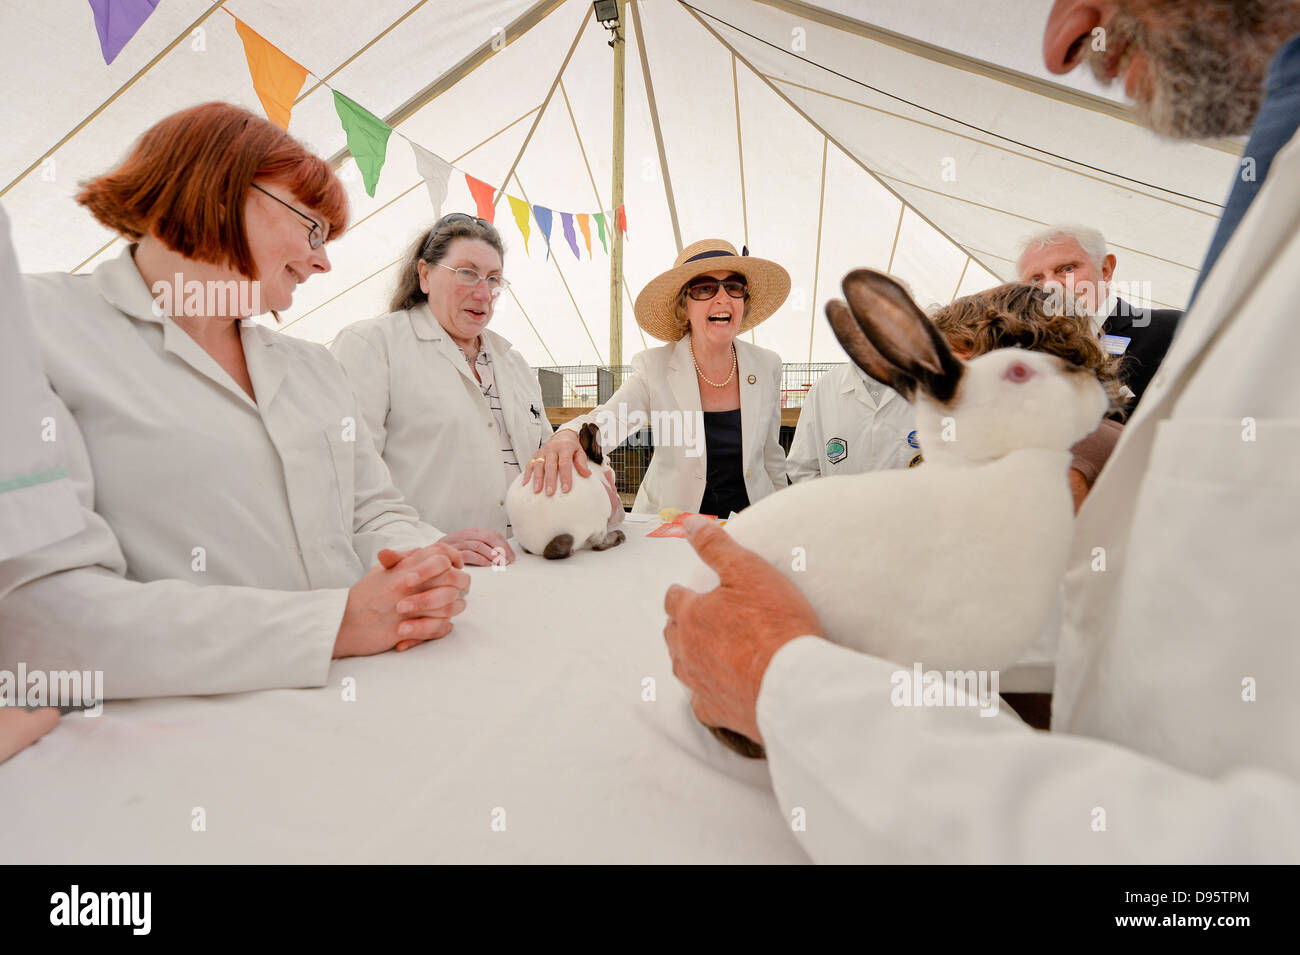 Actress Penelope Keith President of the the South of England Agricultural Society tours the 2013 South of England - Stock Image